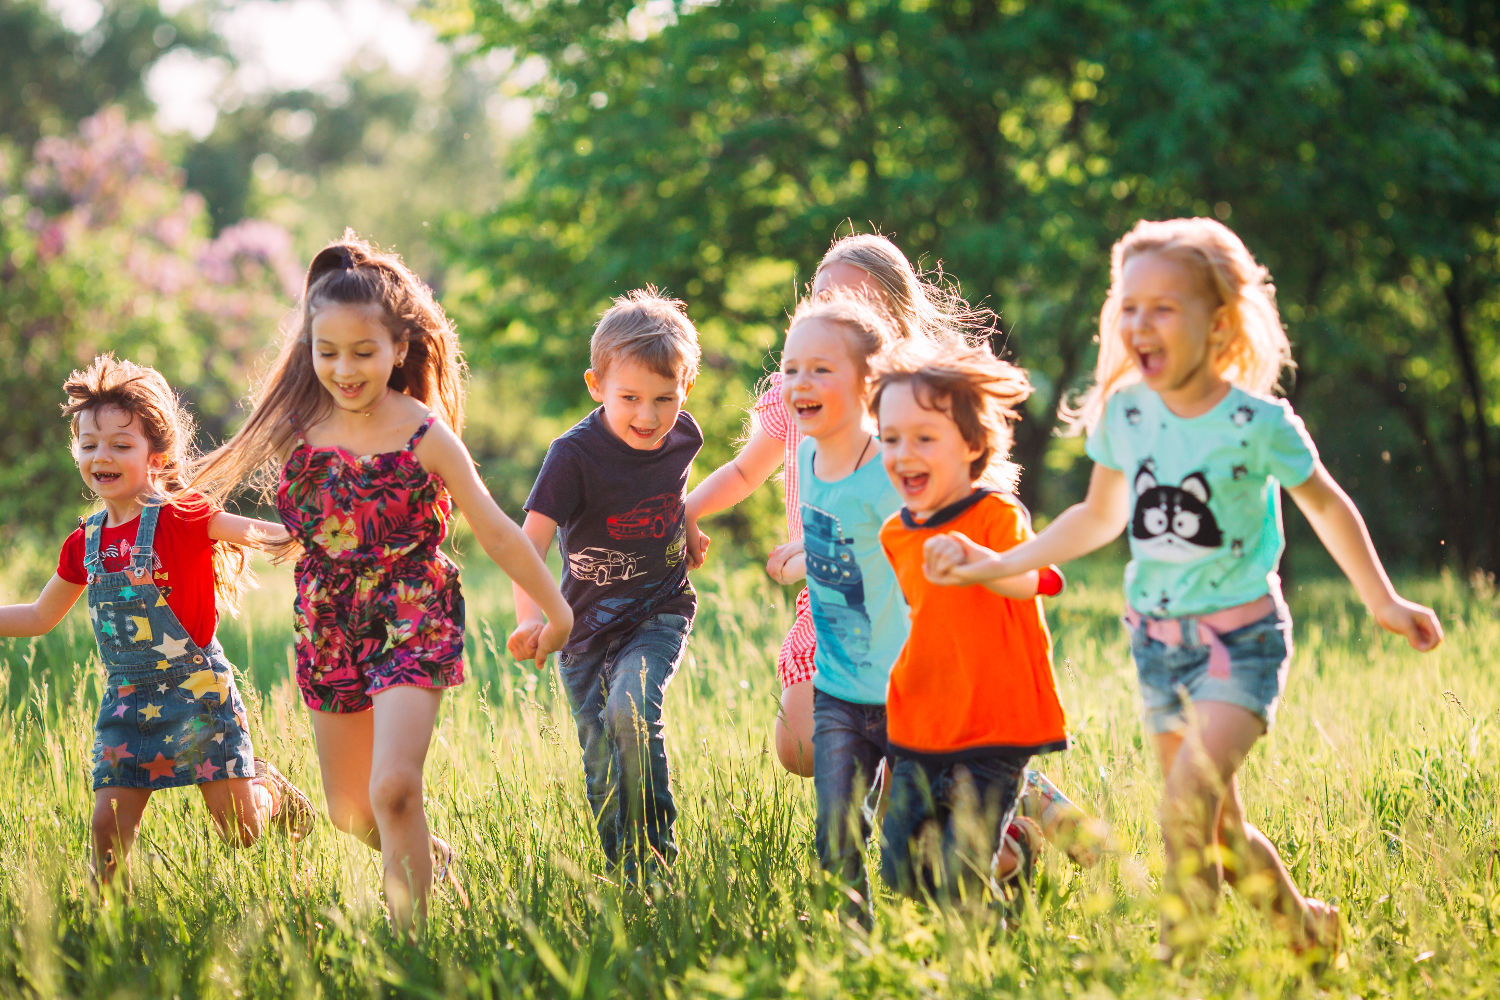 A group of happy children playing together